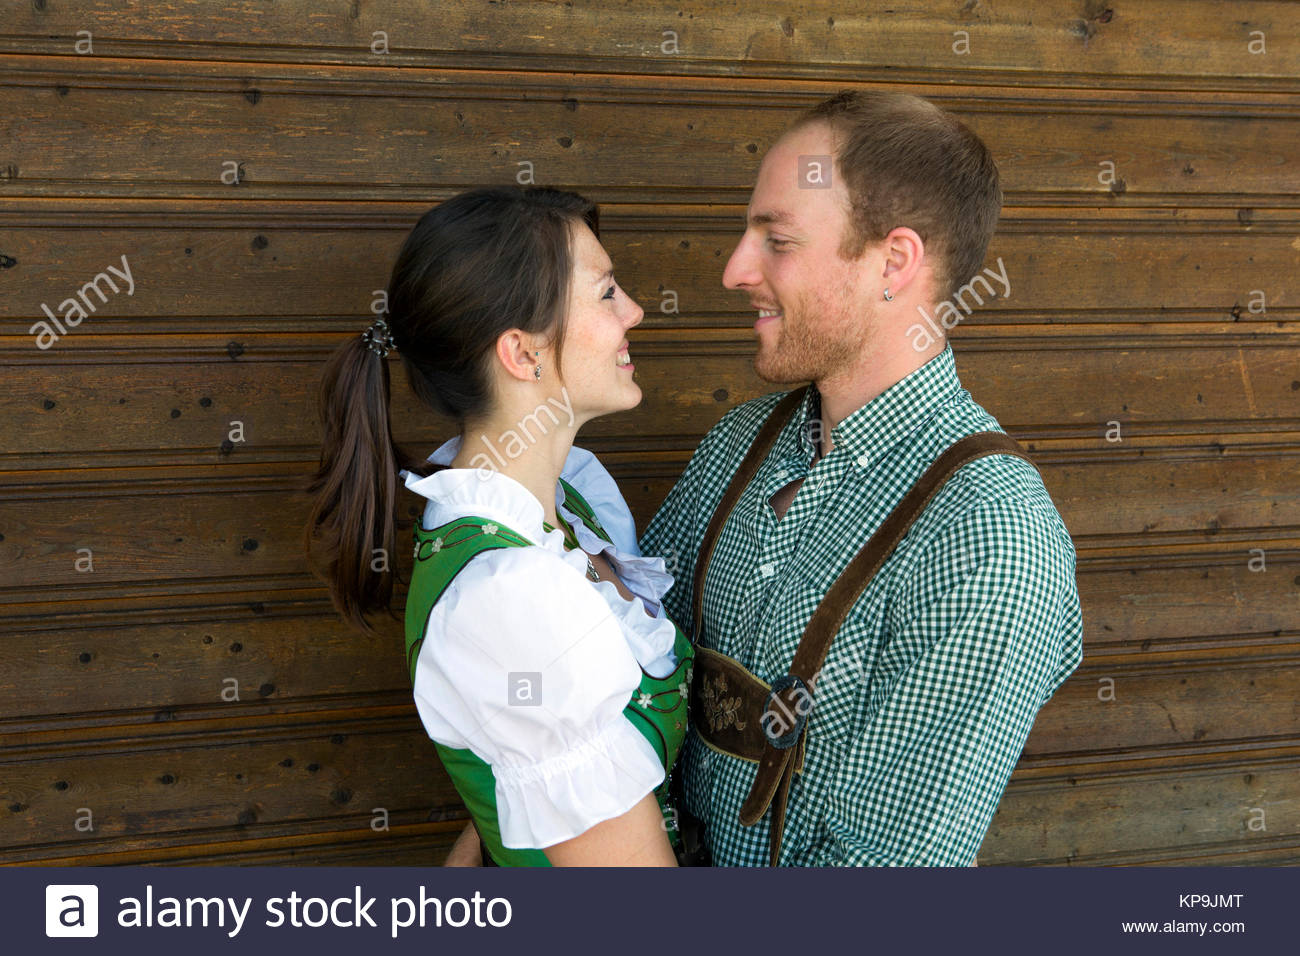 couple in traditional bavarian clothes hugging each other - Stock Image